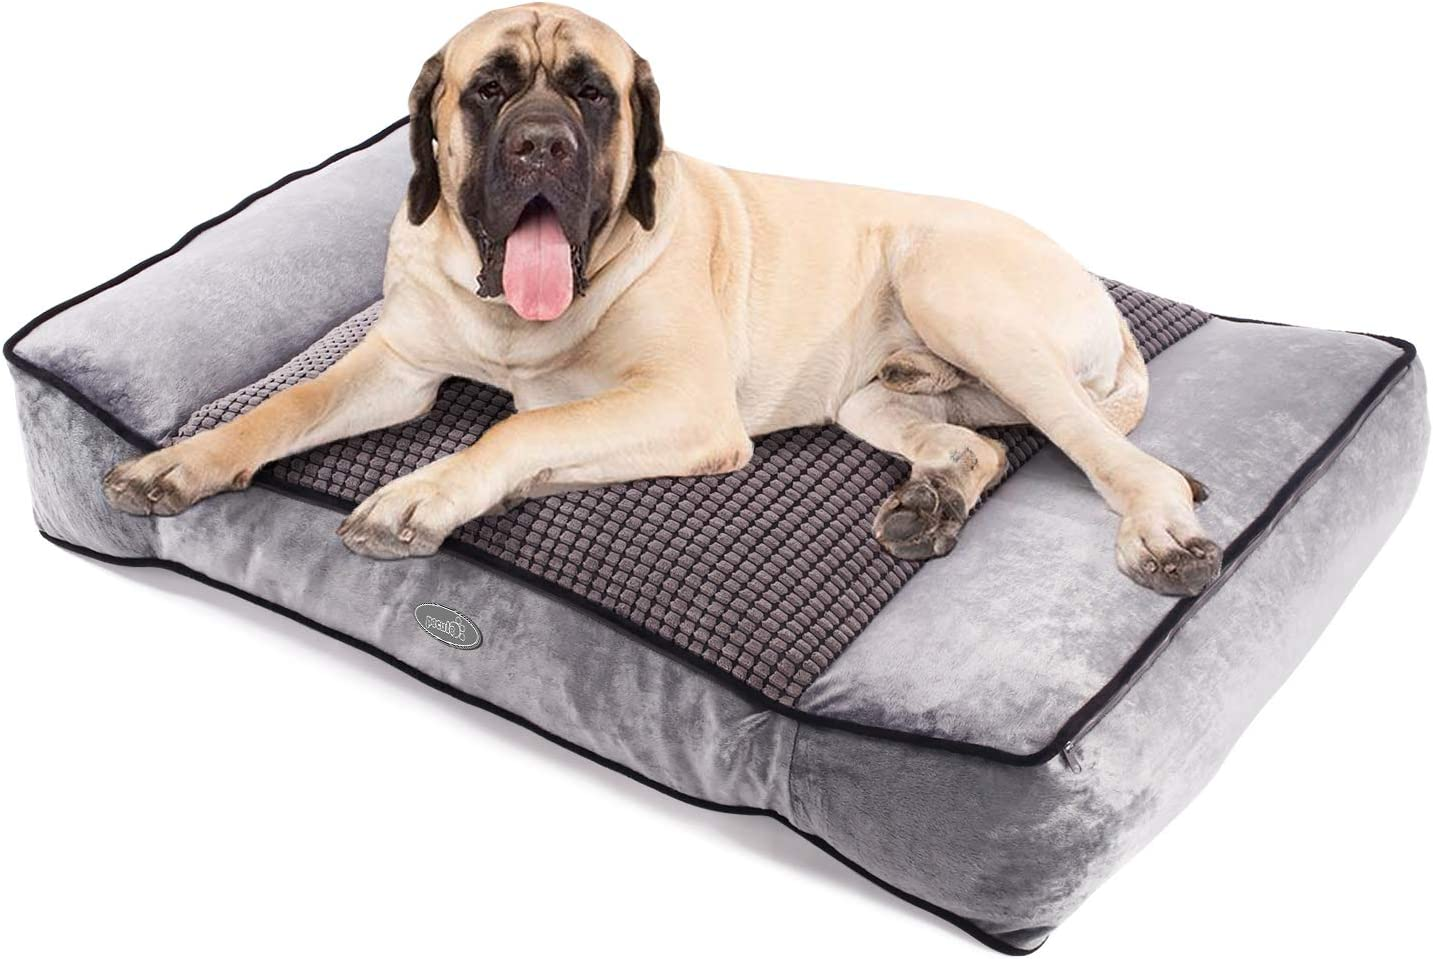 Pecute Large Dog Bed, Warm Plush Cool Silk Double-Sided Pet Bed Four Seasons Available, Orthopedic Shredded Memory Foam Dog Beds, Washable Dog Lounge with Removable Cover 40X27X8 in